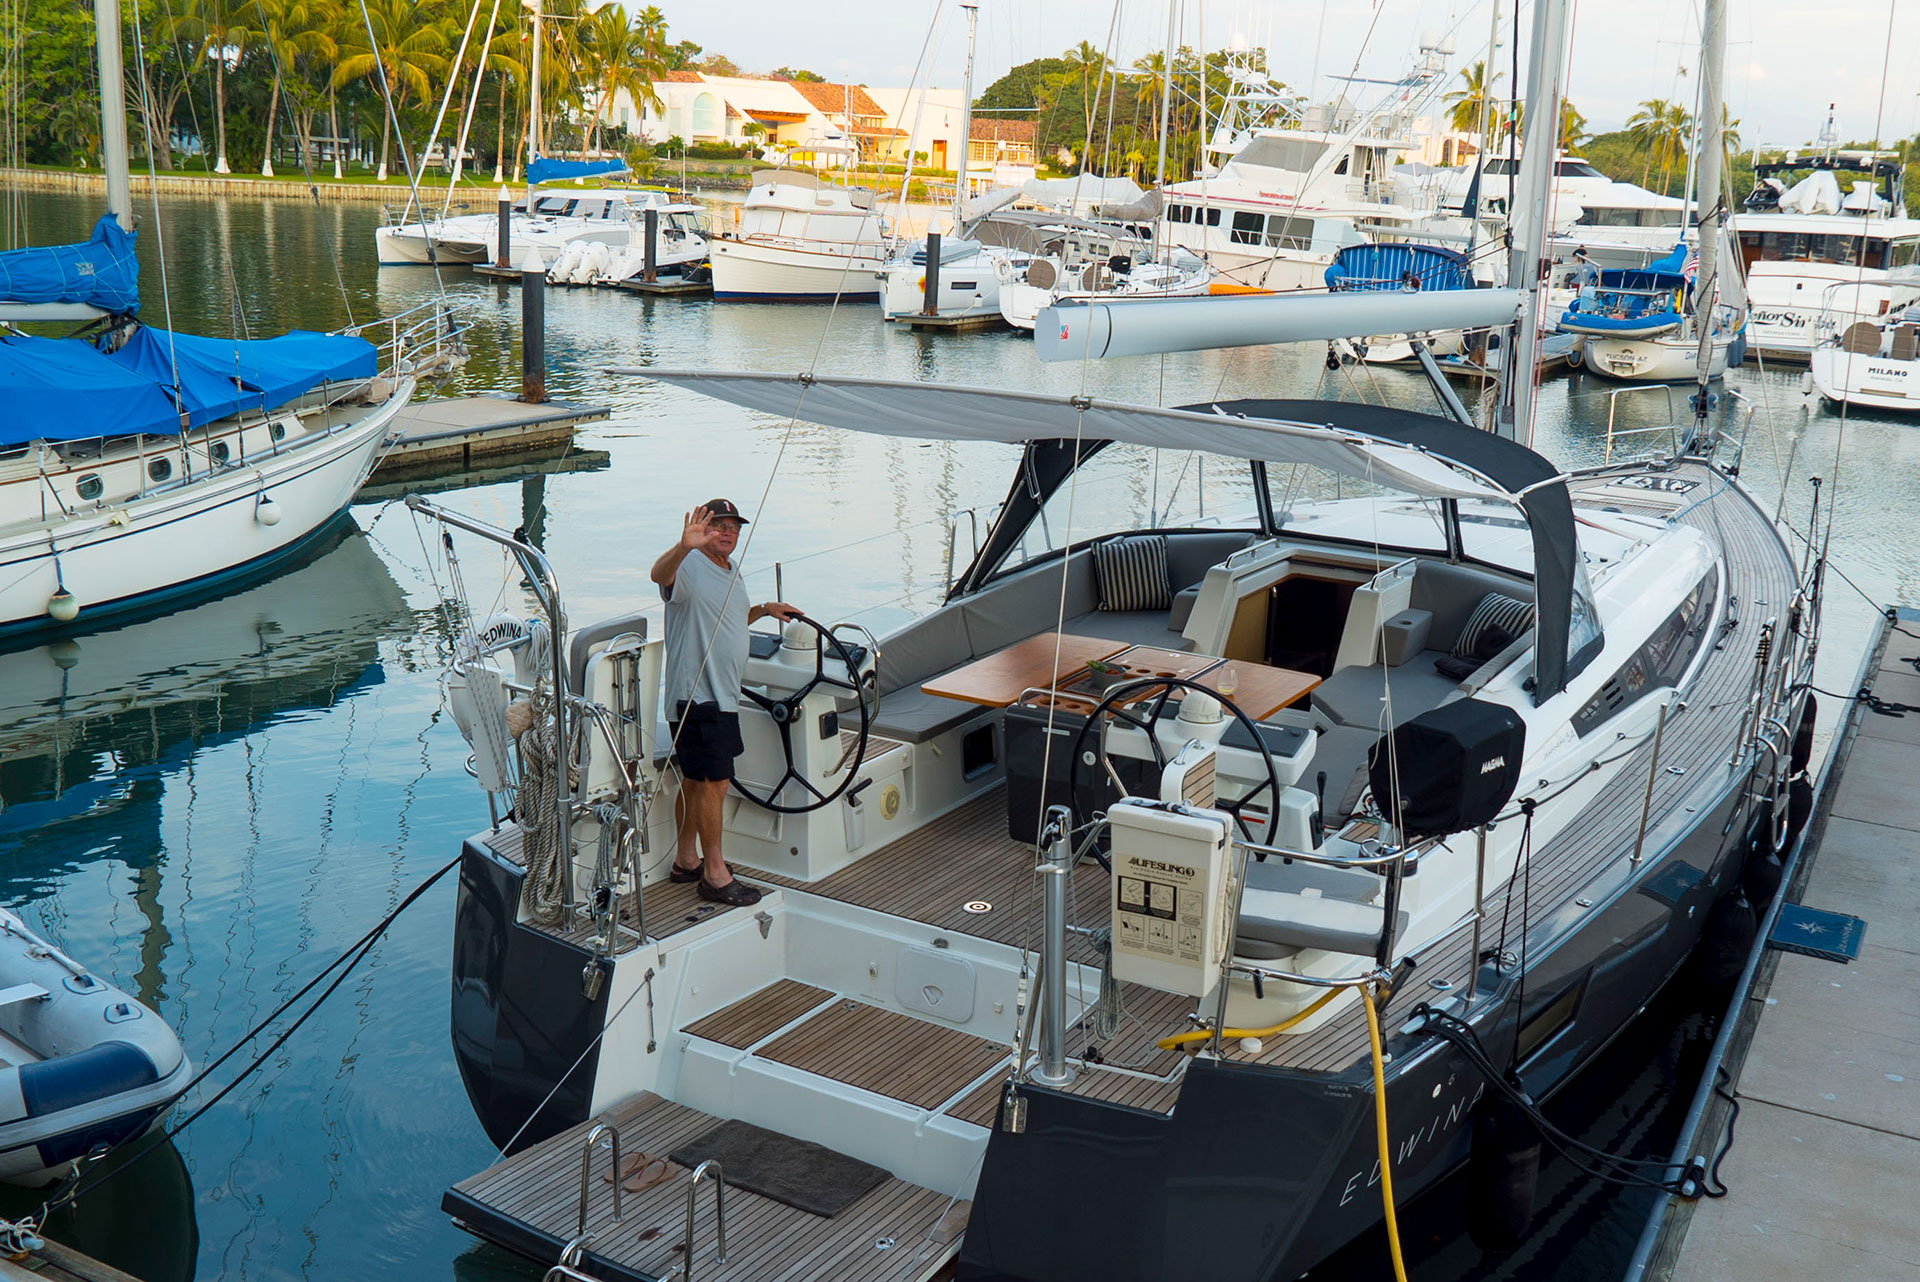 54ft.-Jeanneau-sailing-yacht13-at-Dock